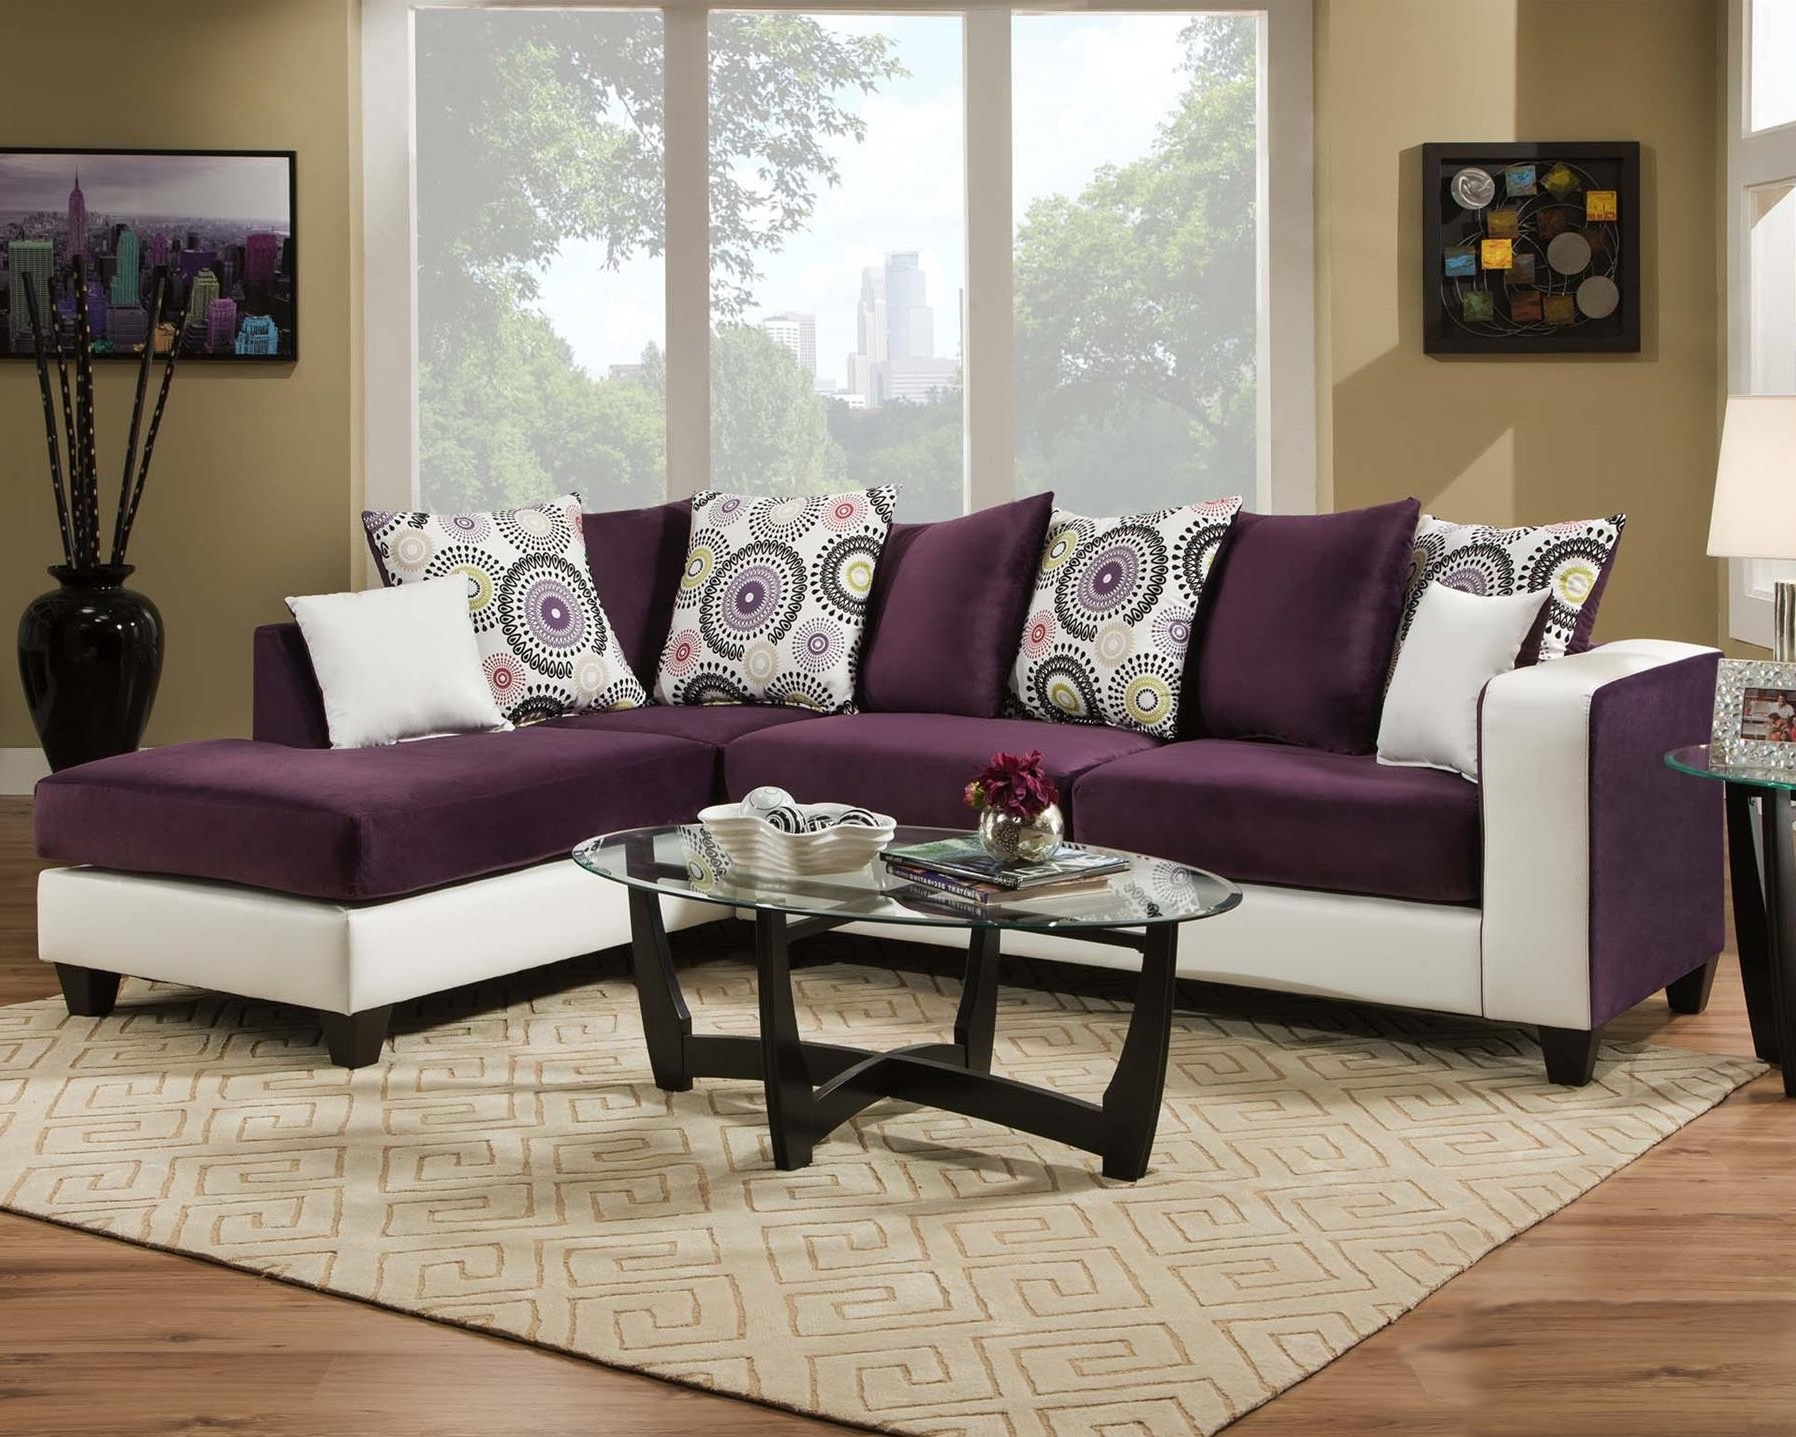 Well Known Dallas Texas Sectional Sofas Intended For Delta : Discount Furniture Online Store, Discounted Furniture In (View 19 of 20)